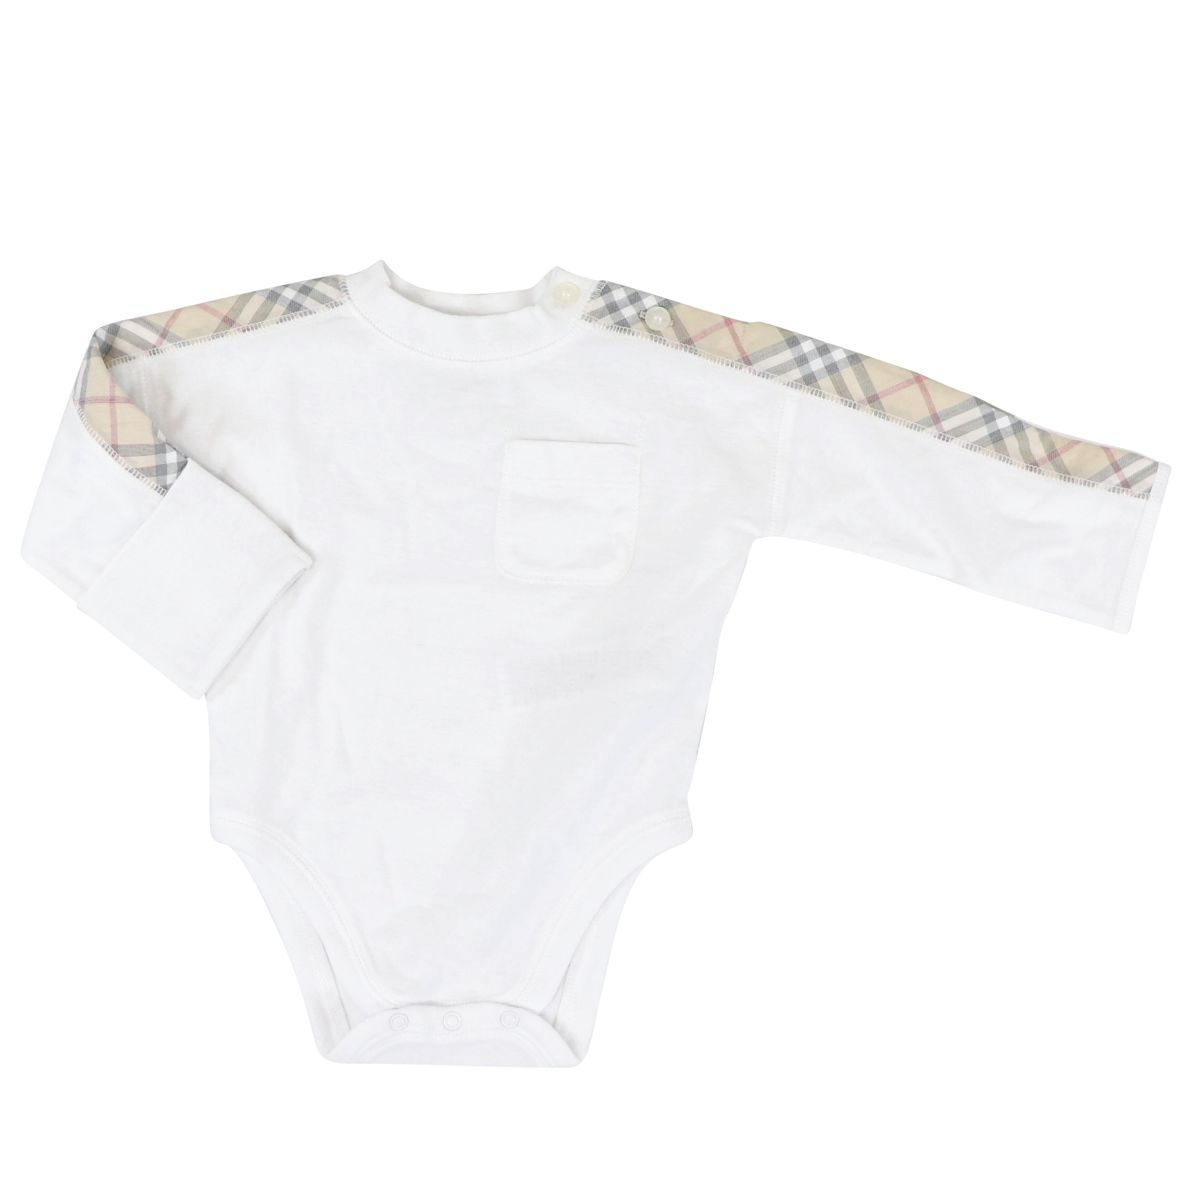 3 piece baby set with check pattern details White Burberry